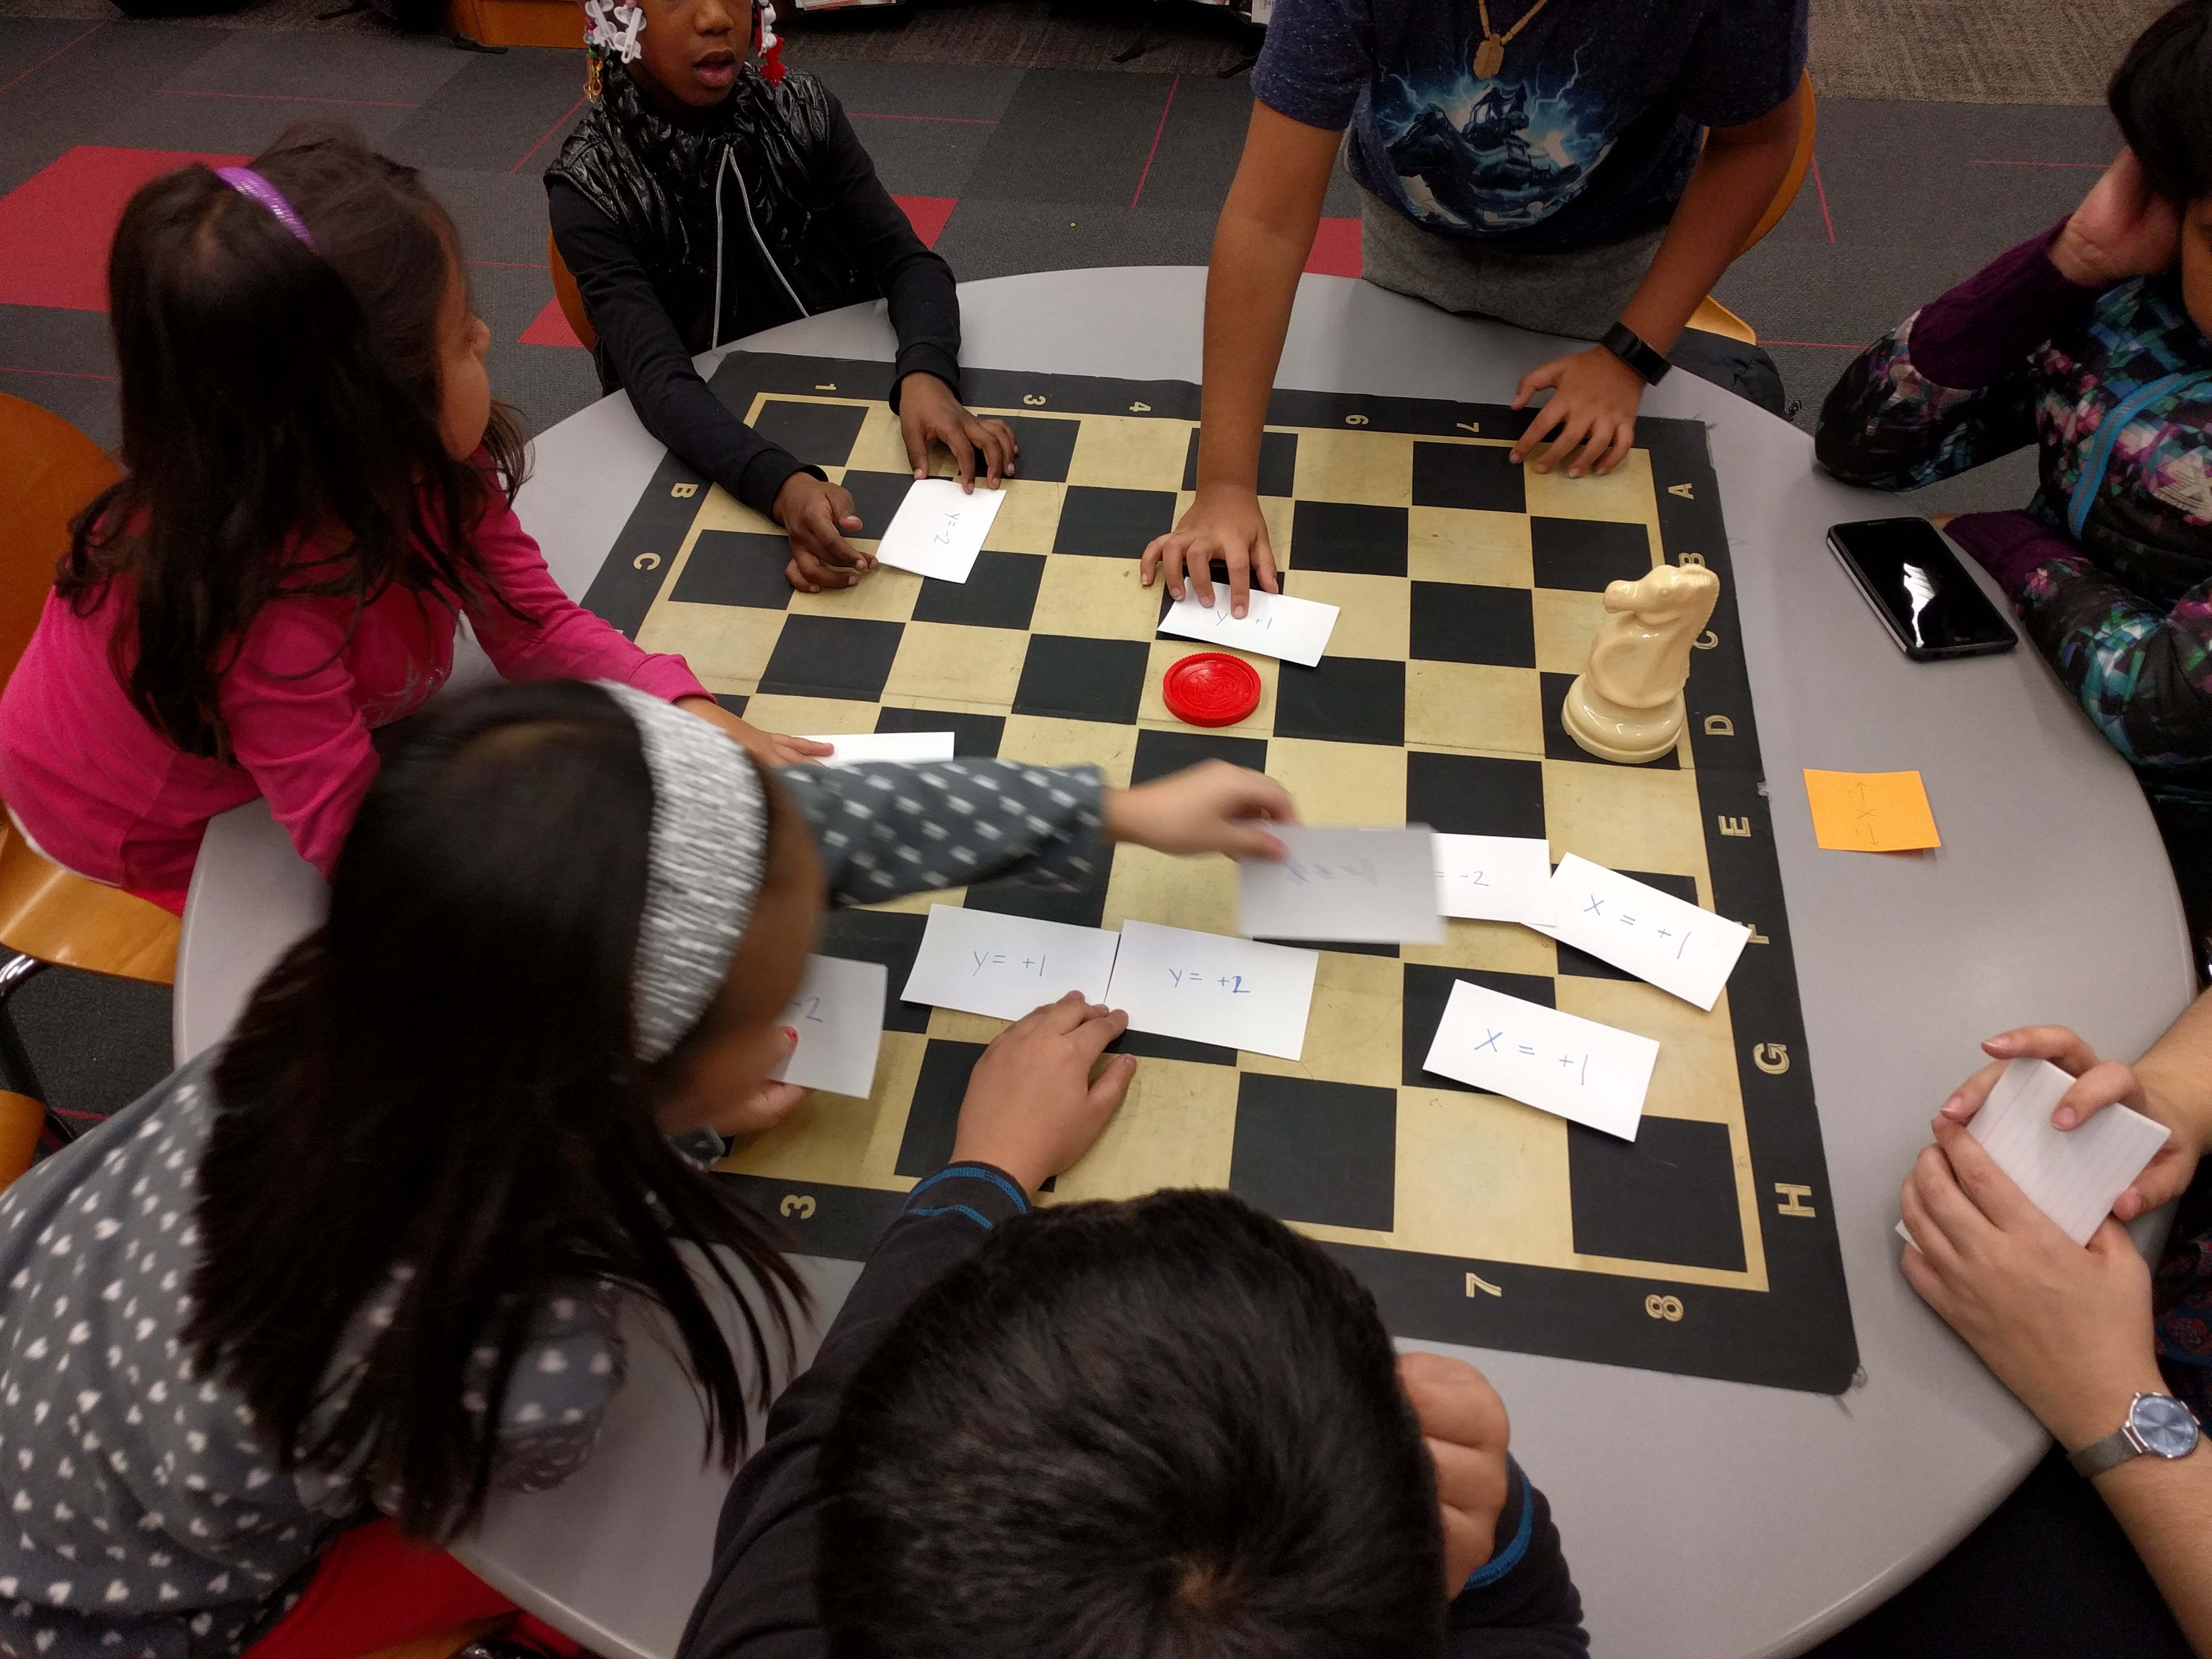 Participants using code written on index cards to move chess and checker pieces.